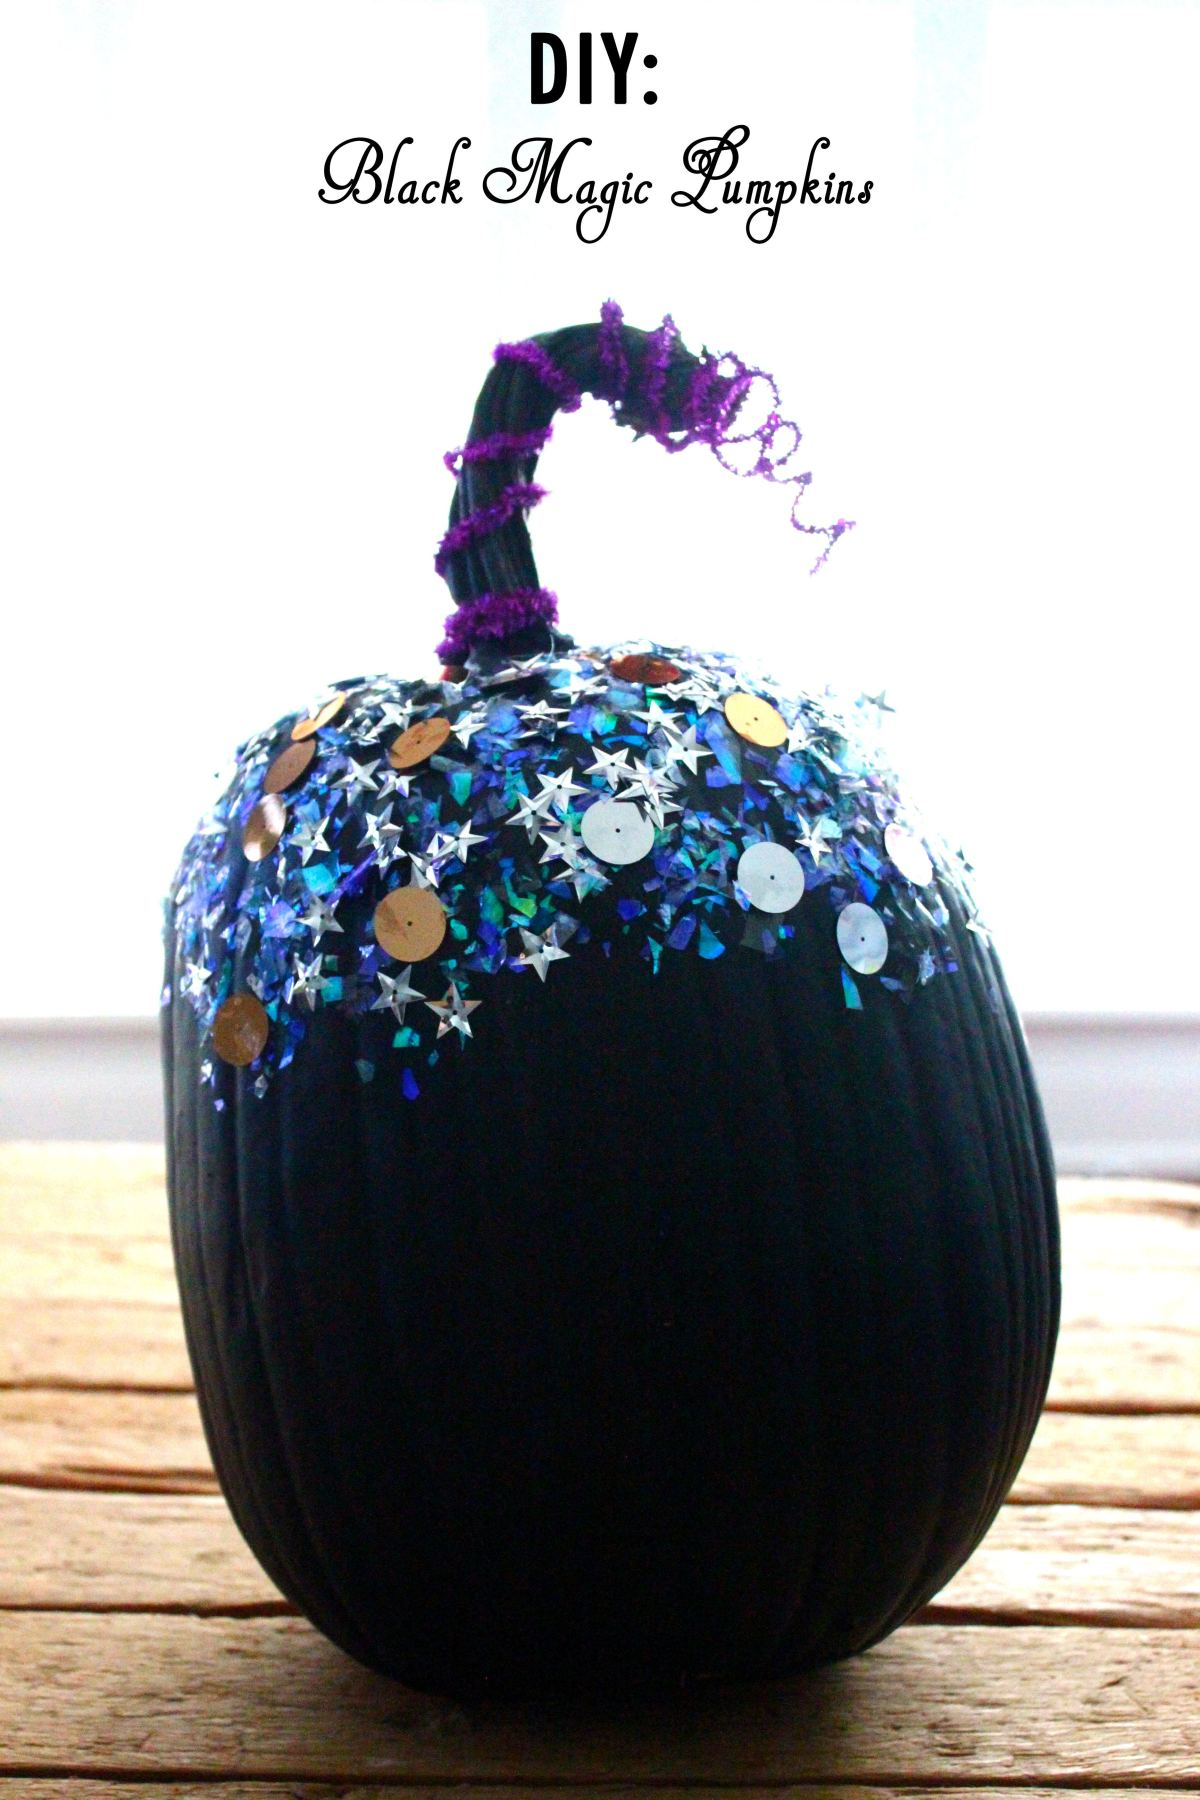 DIY: Black Magic Pumpkins